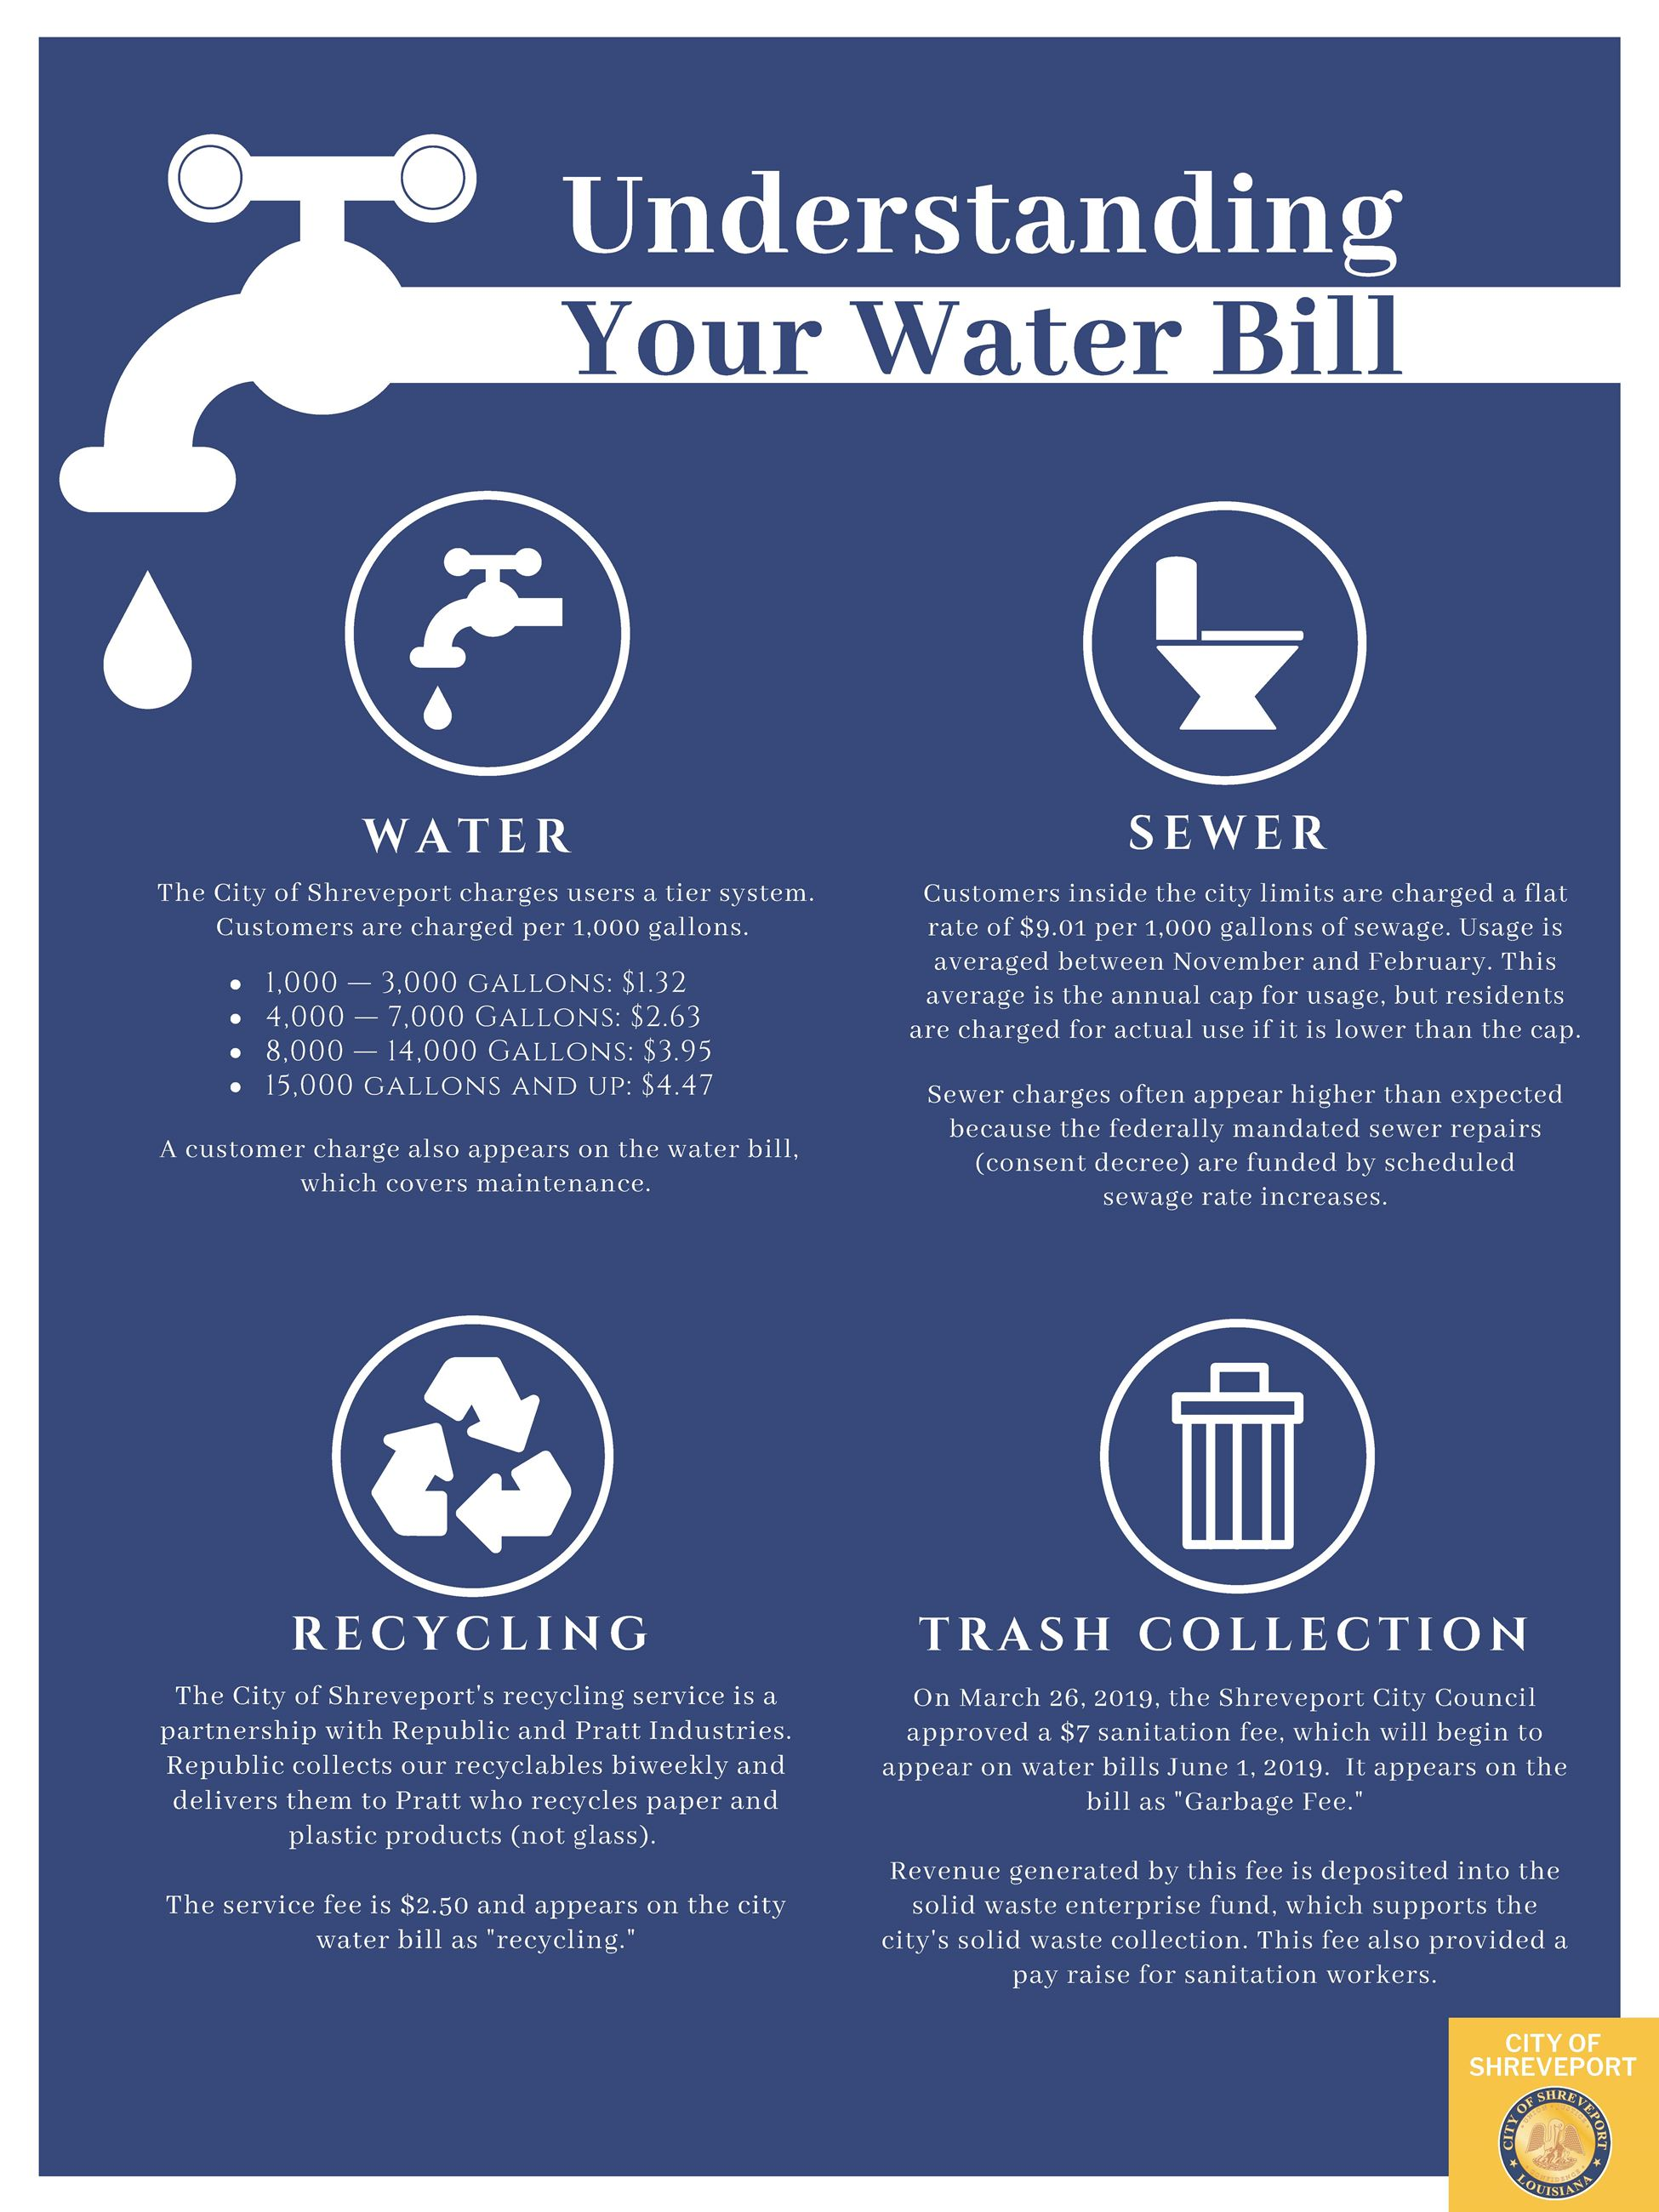 Understanding Your Water Bill